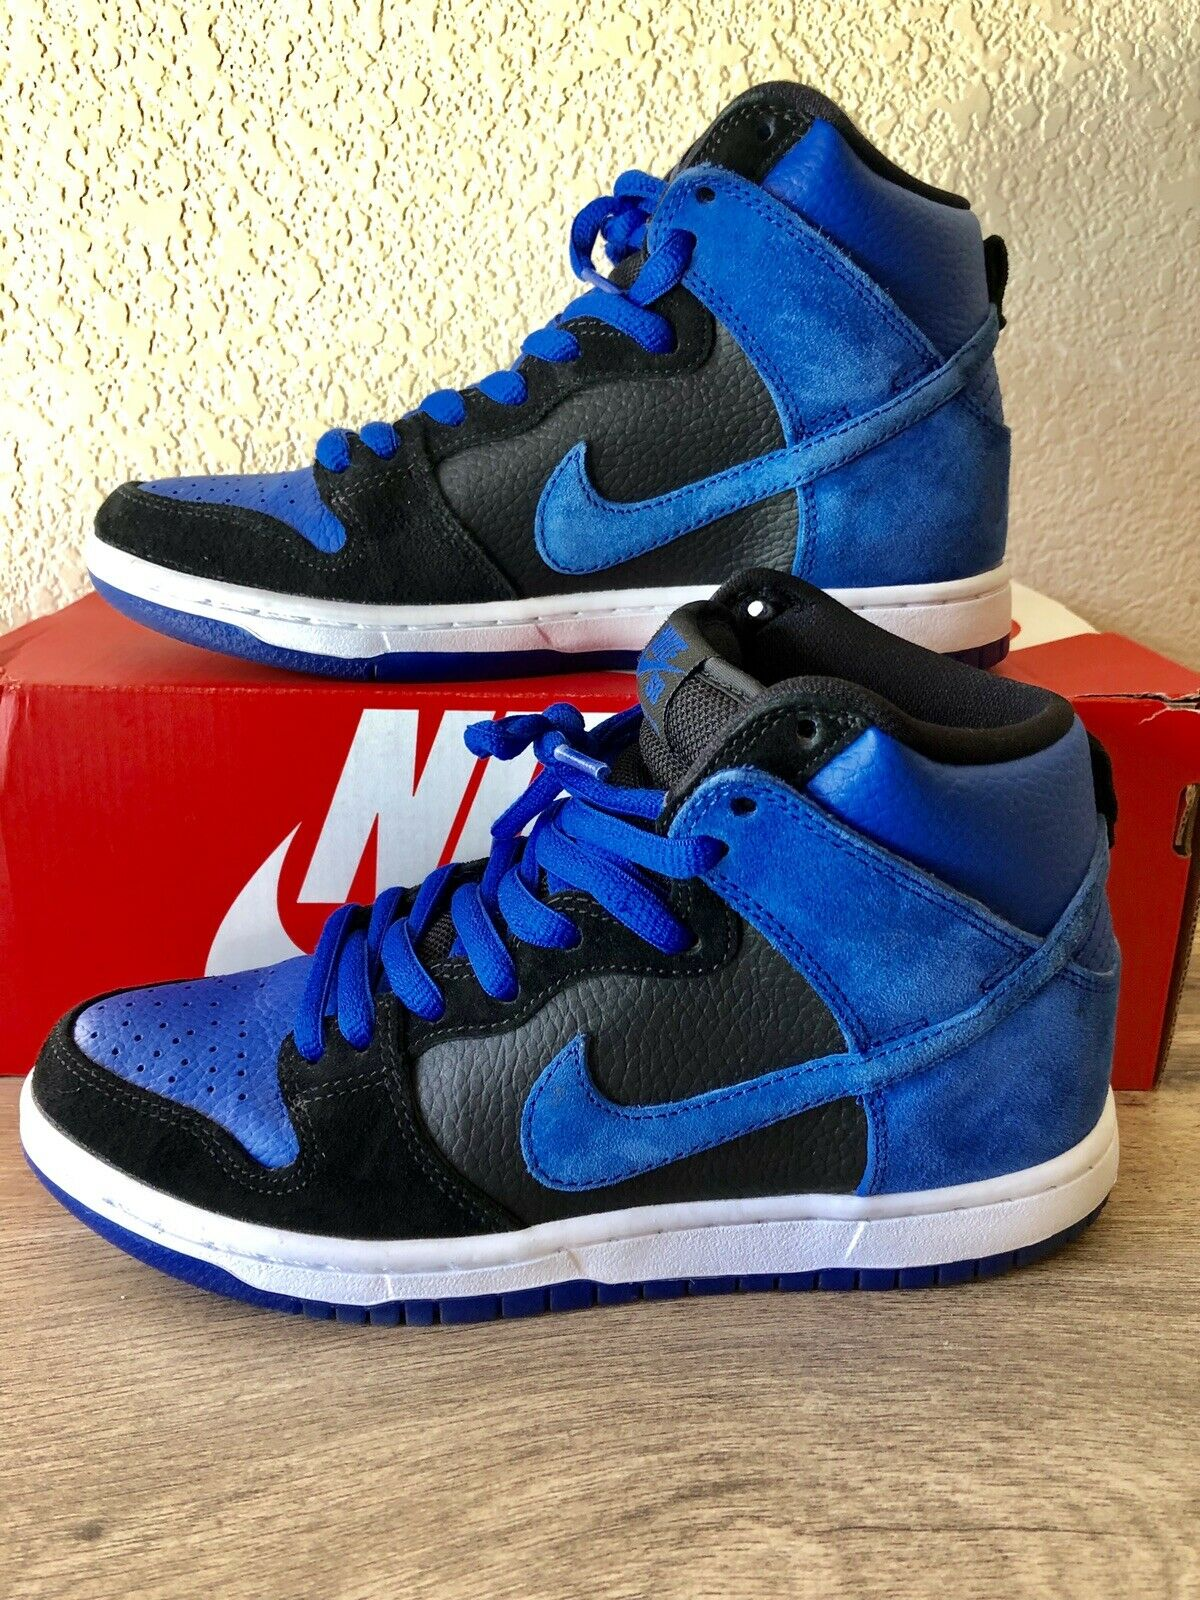 Größe JPack SB Pro High Dunk 5.5 Nike box No Rare Royal 018